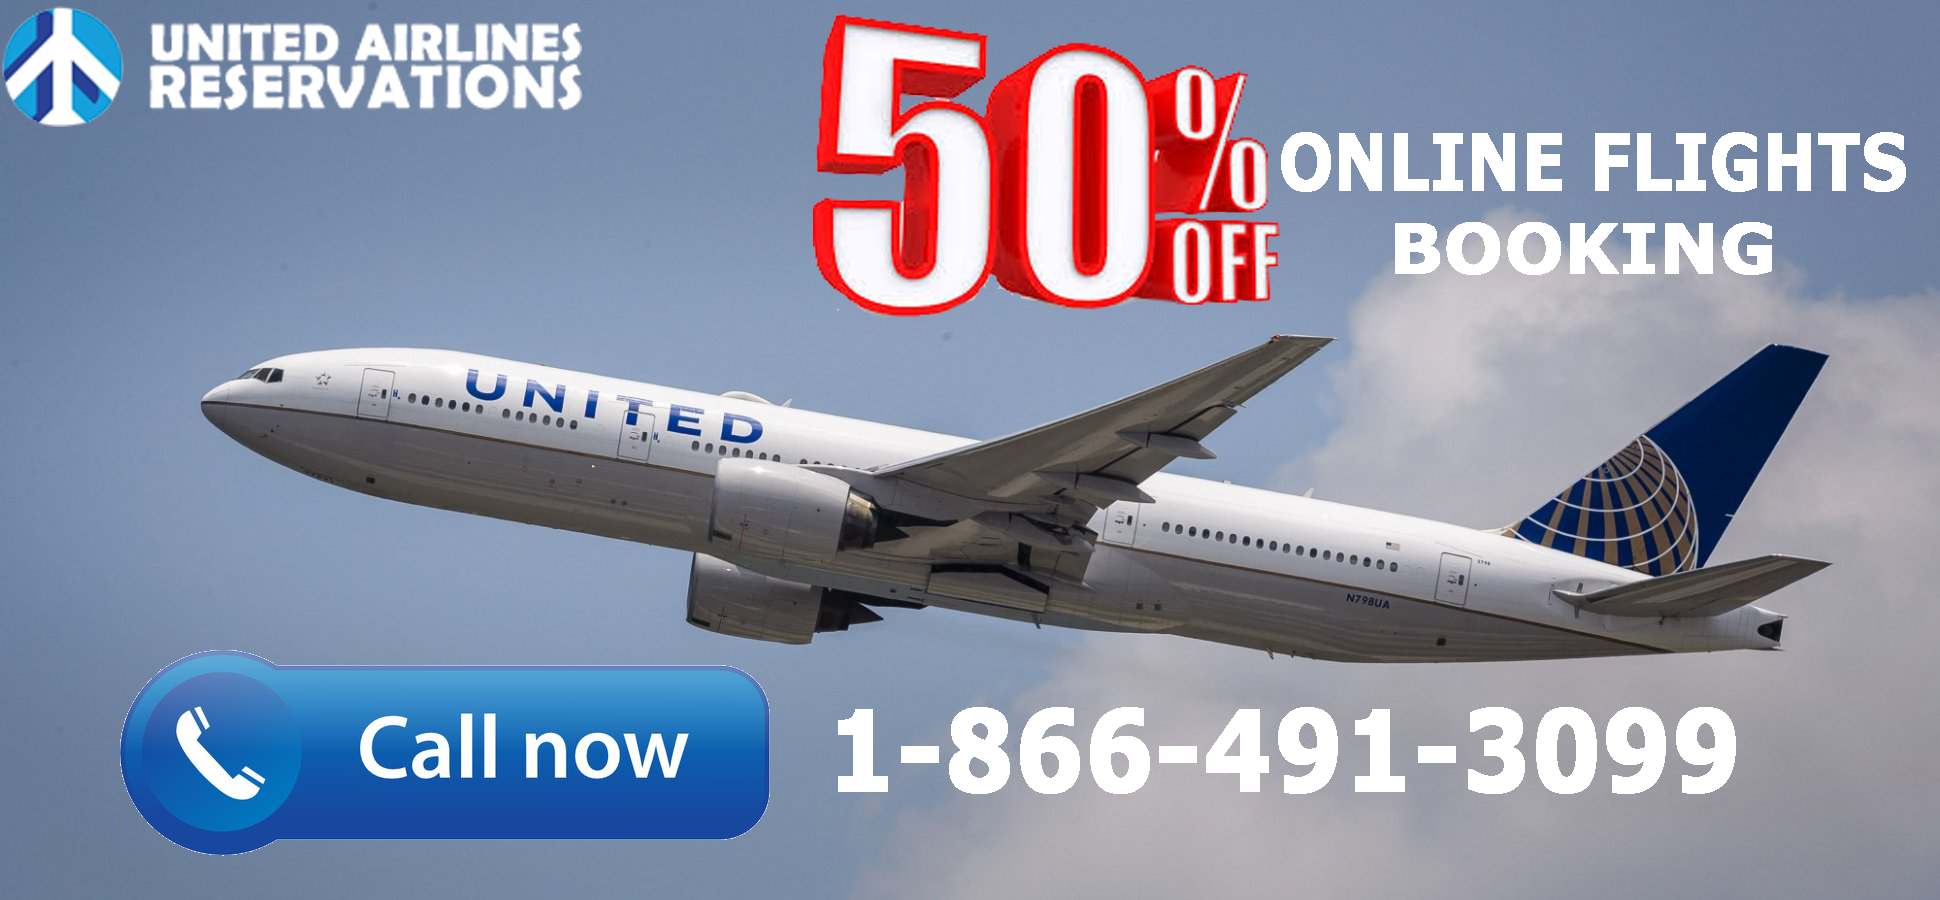 United airlines reservations are there for you. Try out